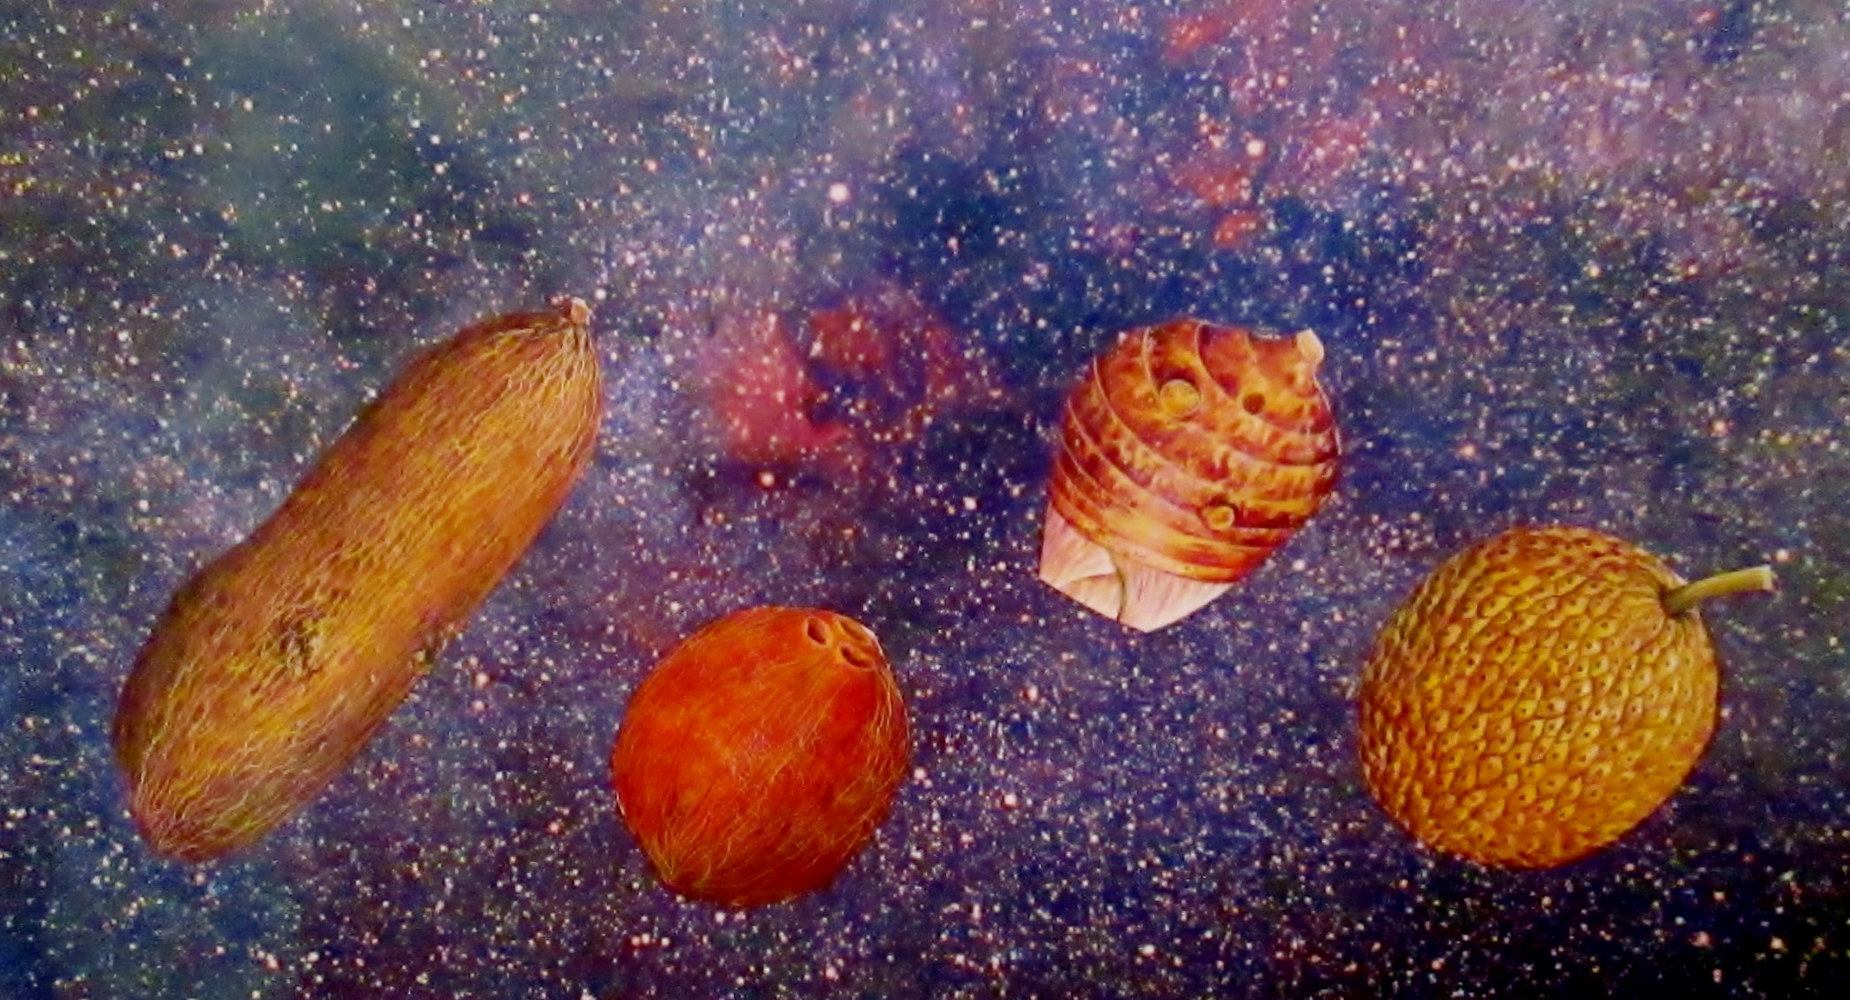 Yams in Space  by Jo Ann Tunnell Muench